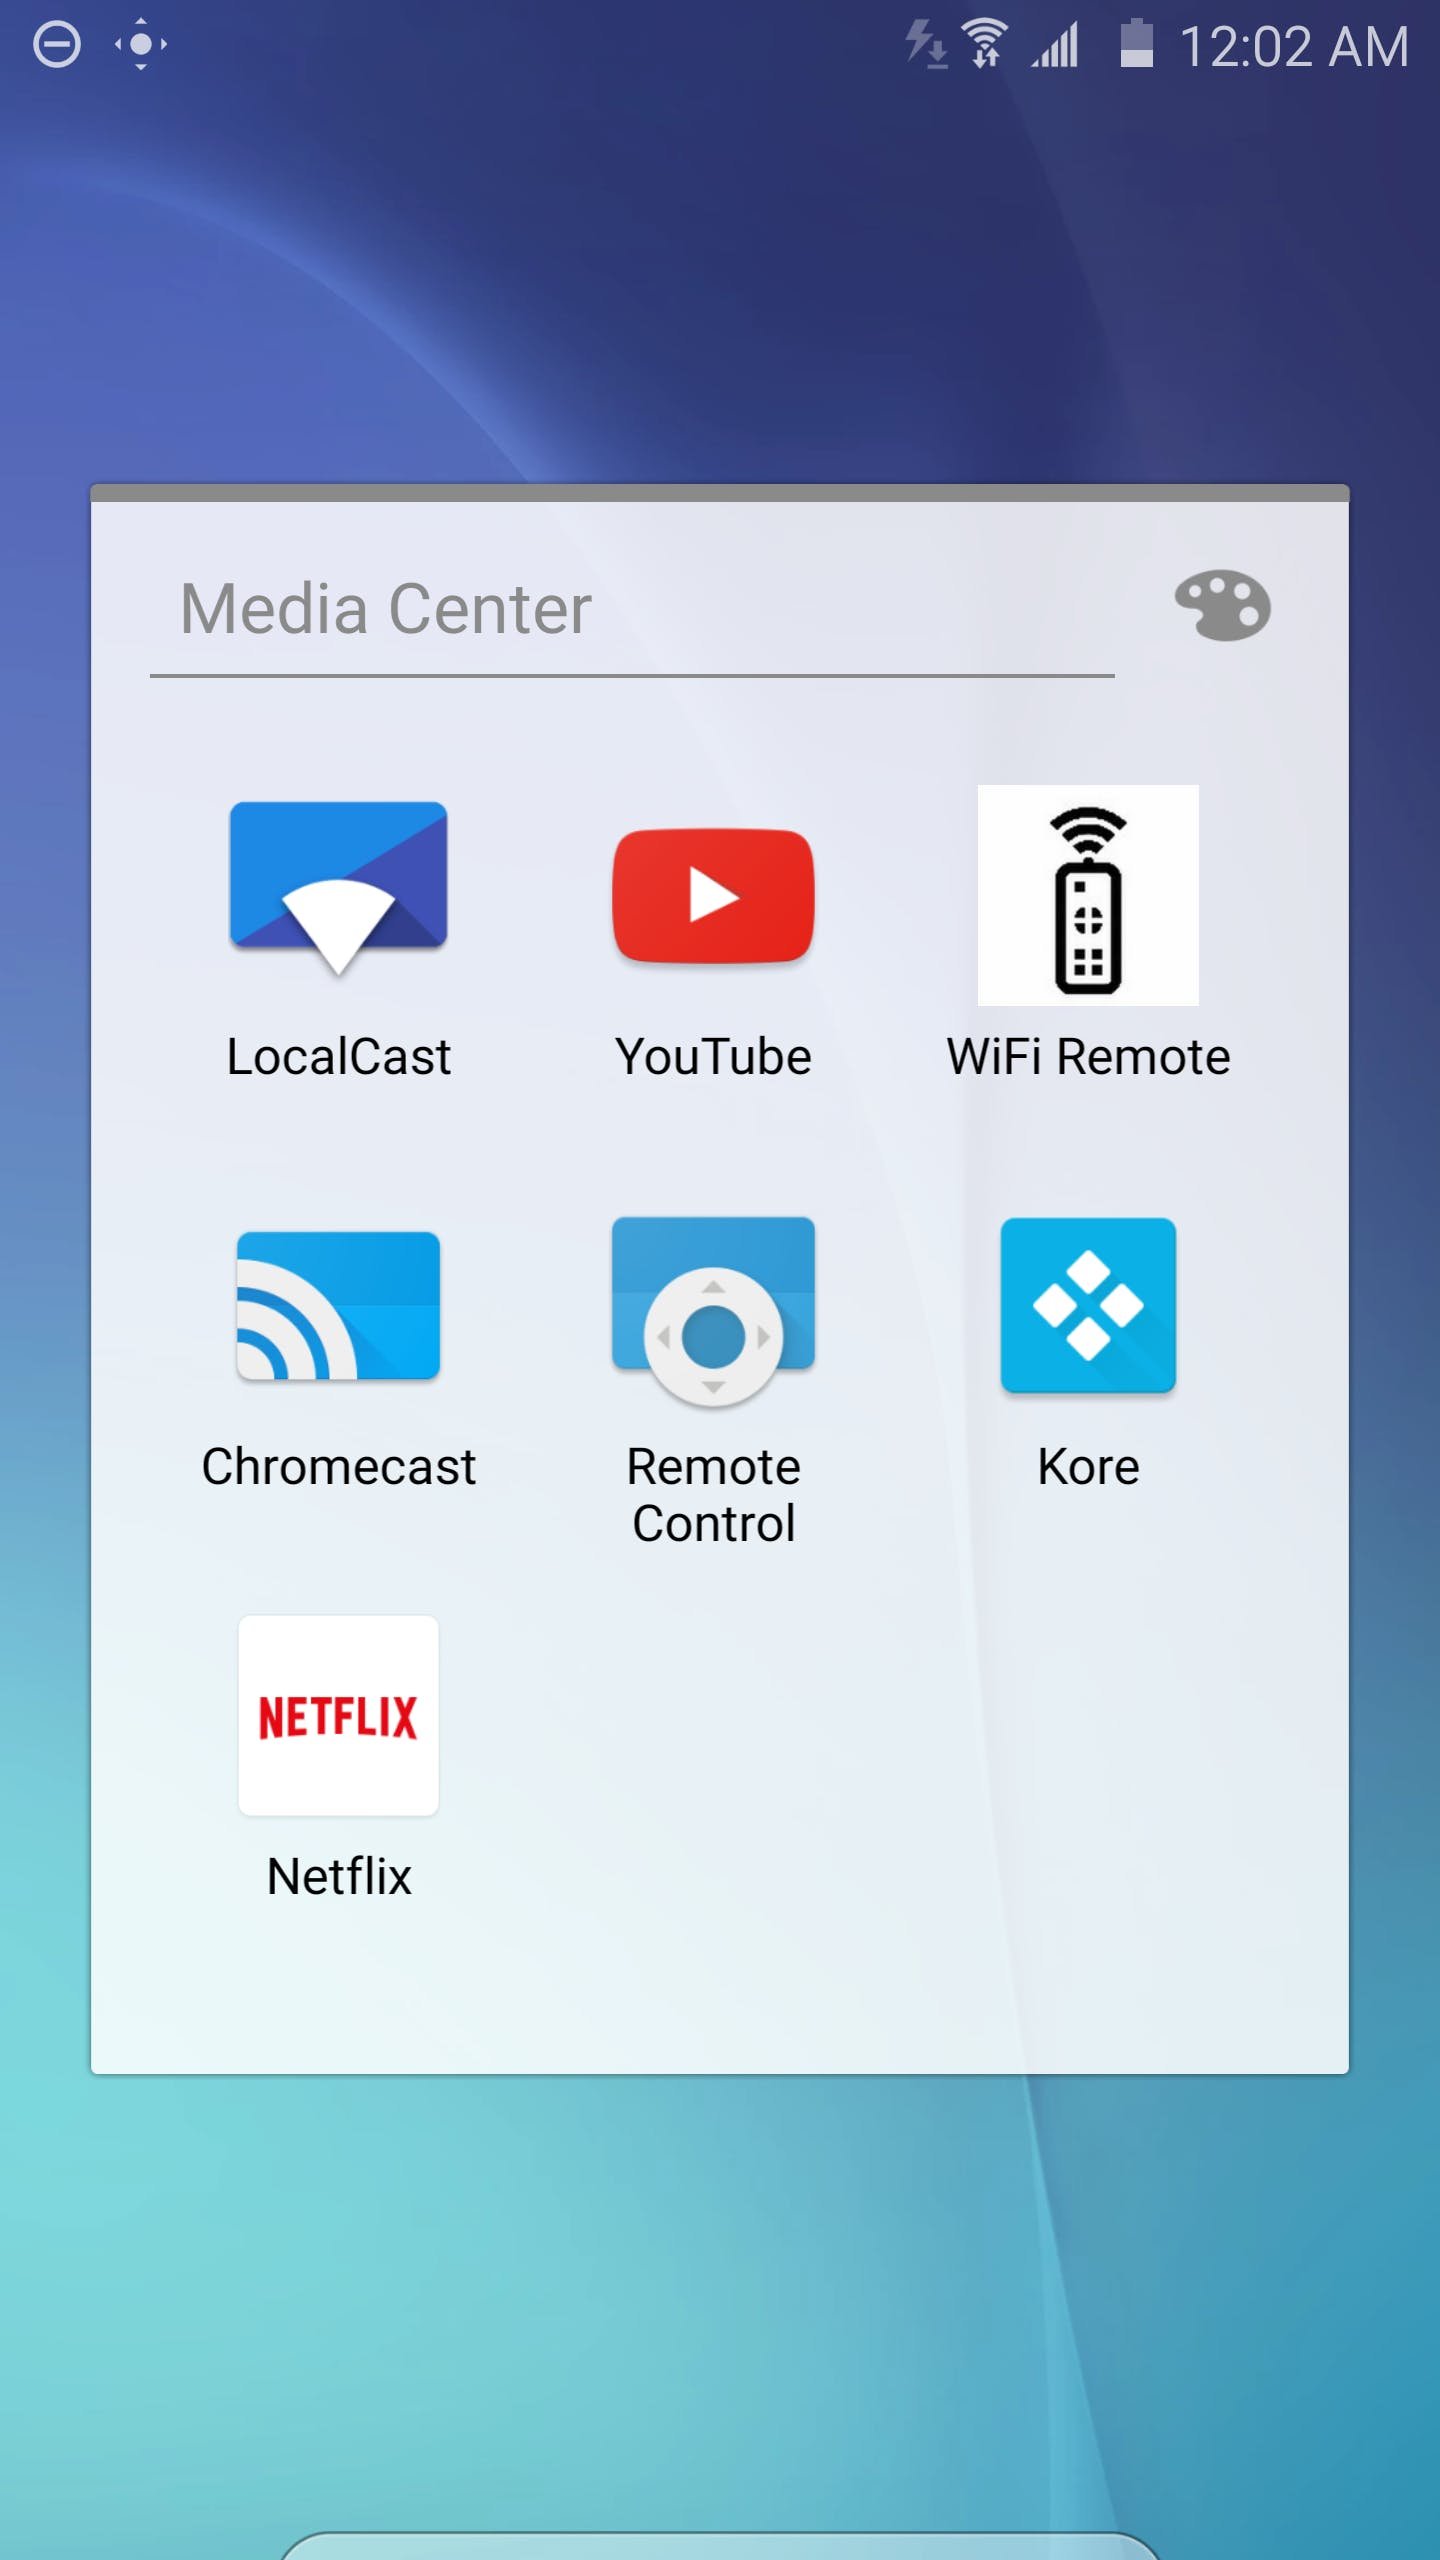 Just tap WiFi Remote to launch the webapp